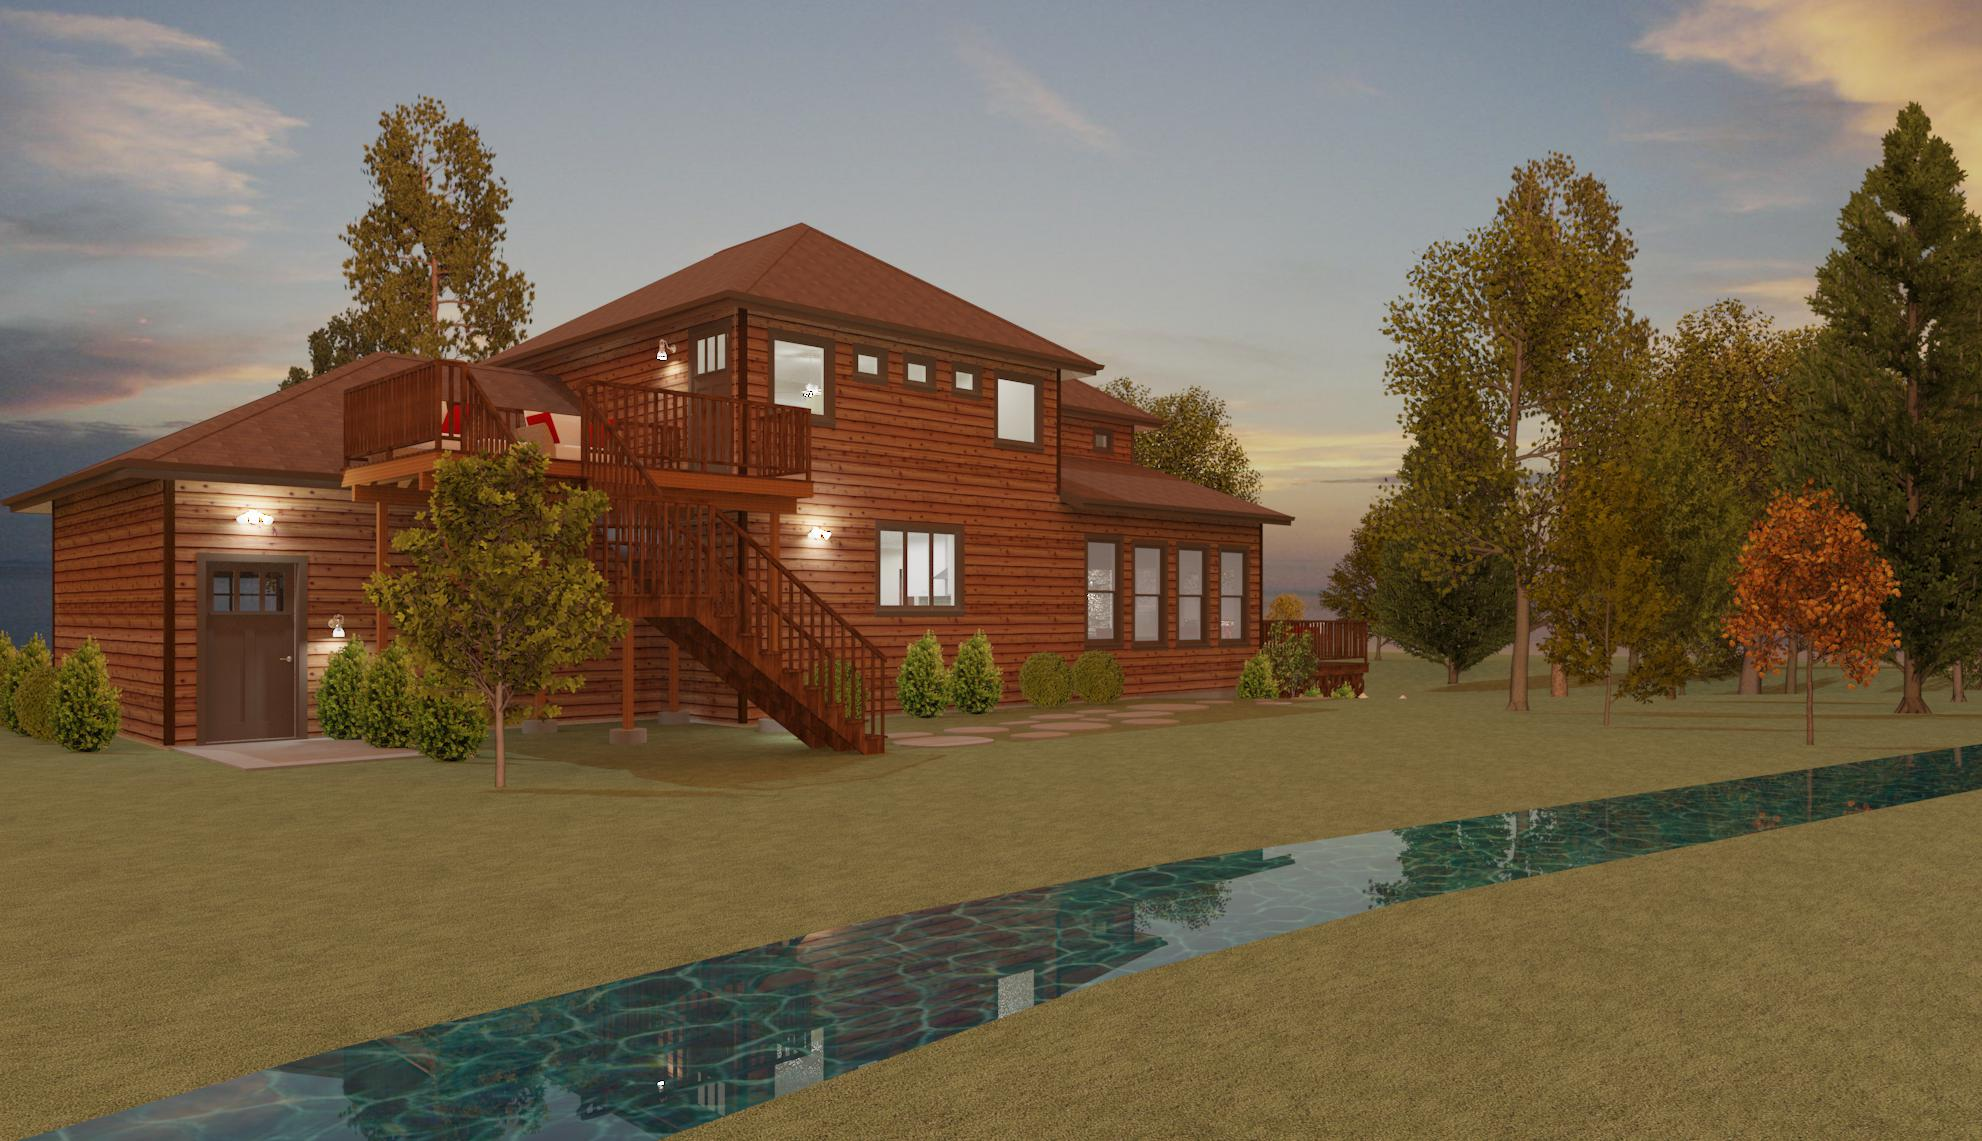 Wattz Residence - Proposed Rear View Raytrace 2.22.16.jpg